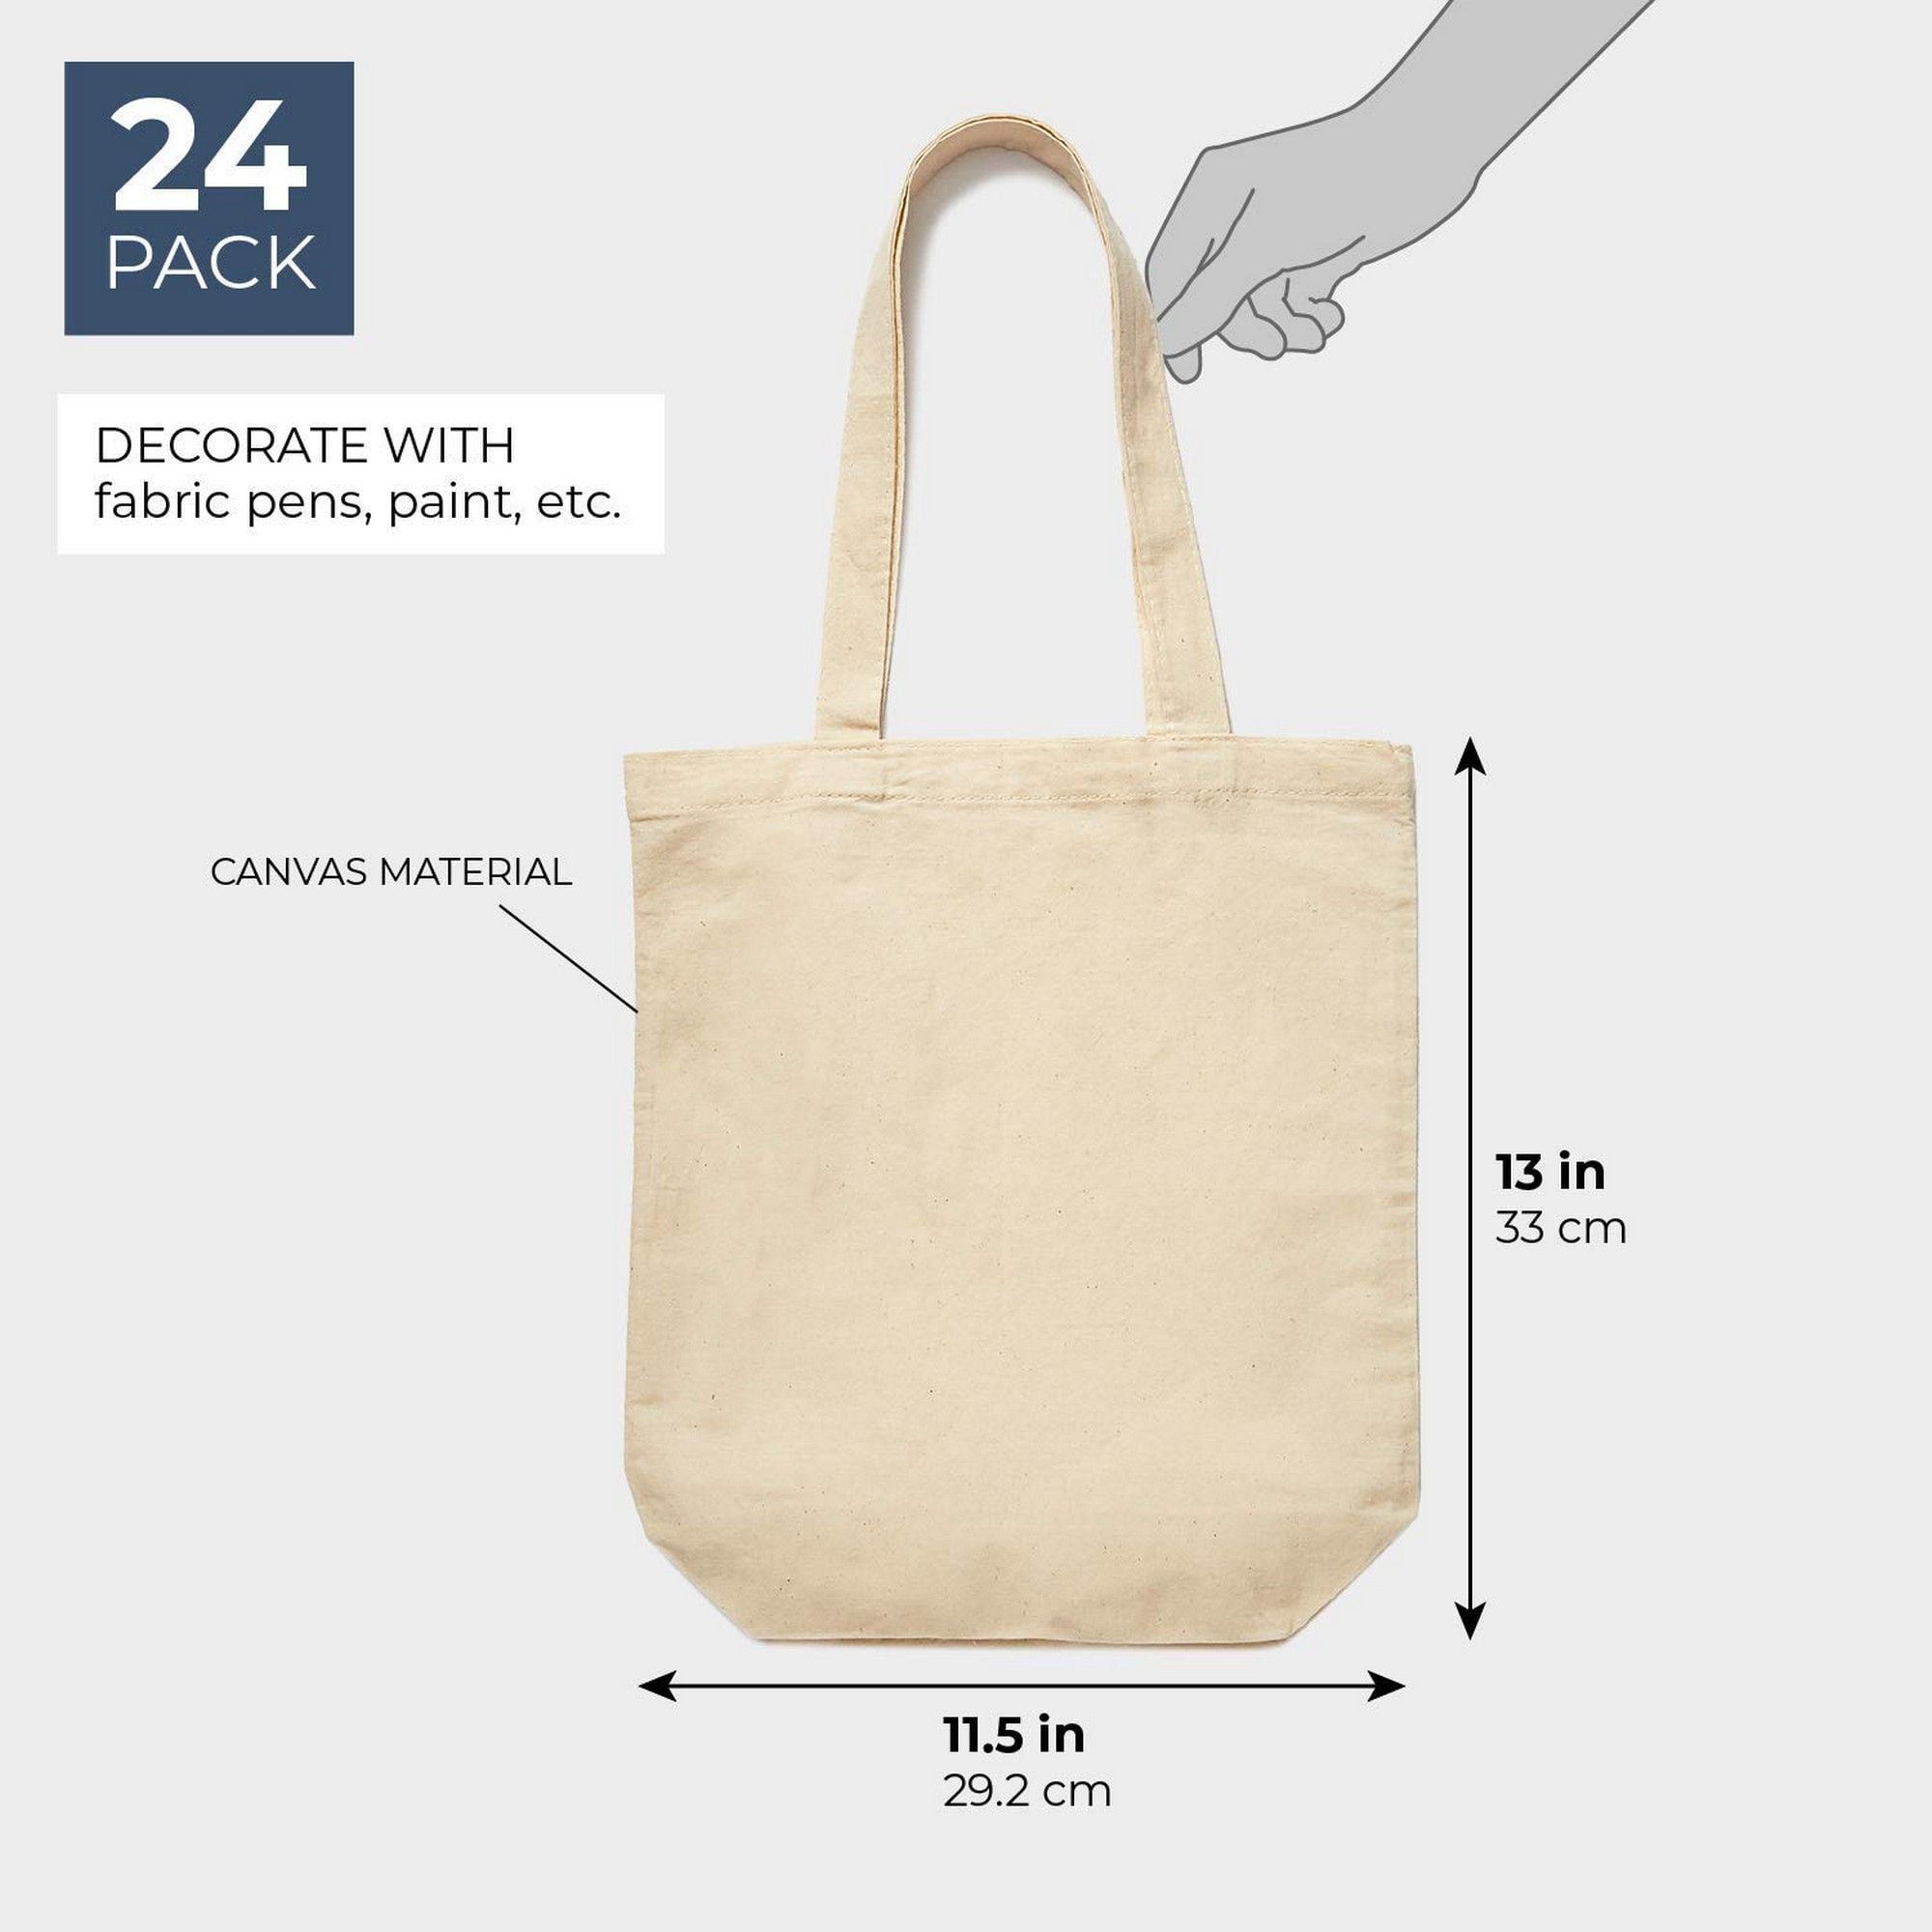 Set Of 24 Bulk Blank Cotton Canvas Tote Bags For Diy Crafts 13 X 11 5 Inches Walmart Com Walmart Com